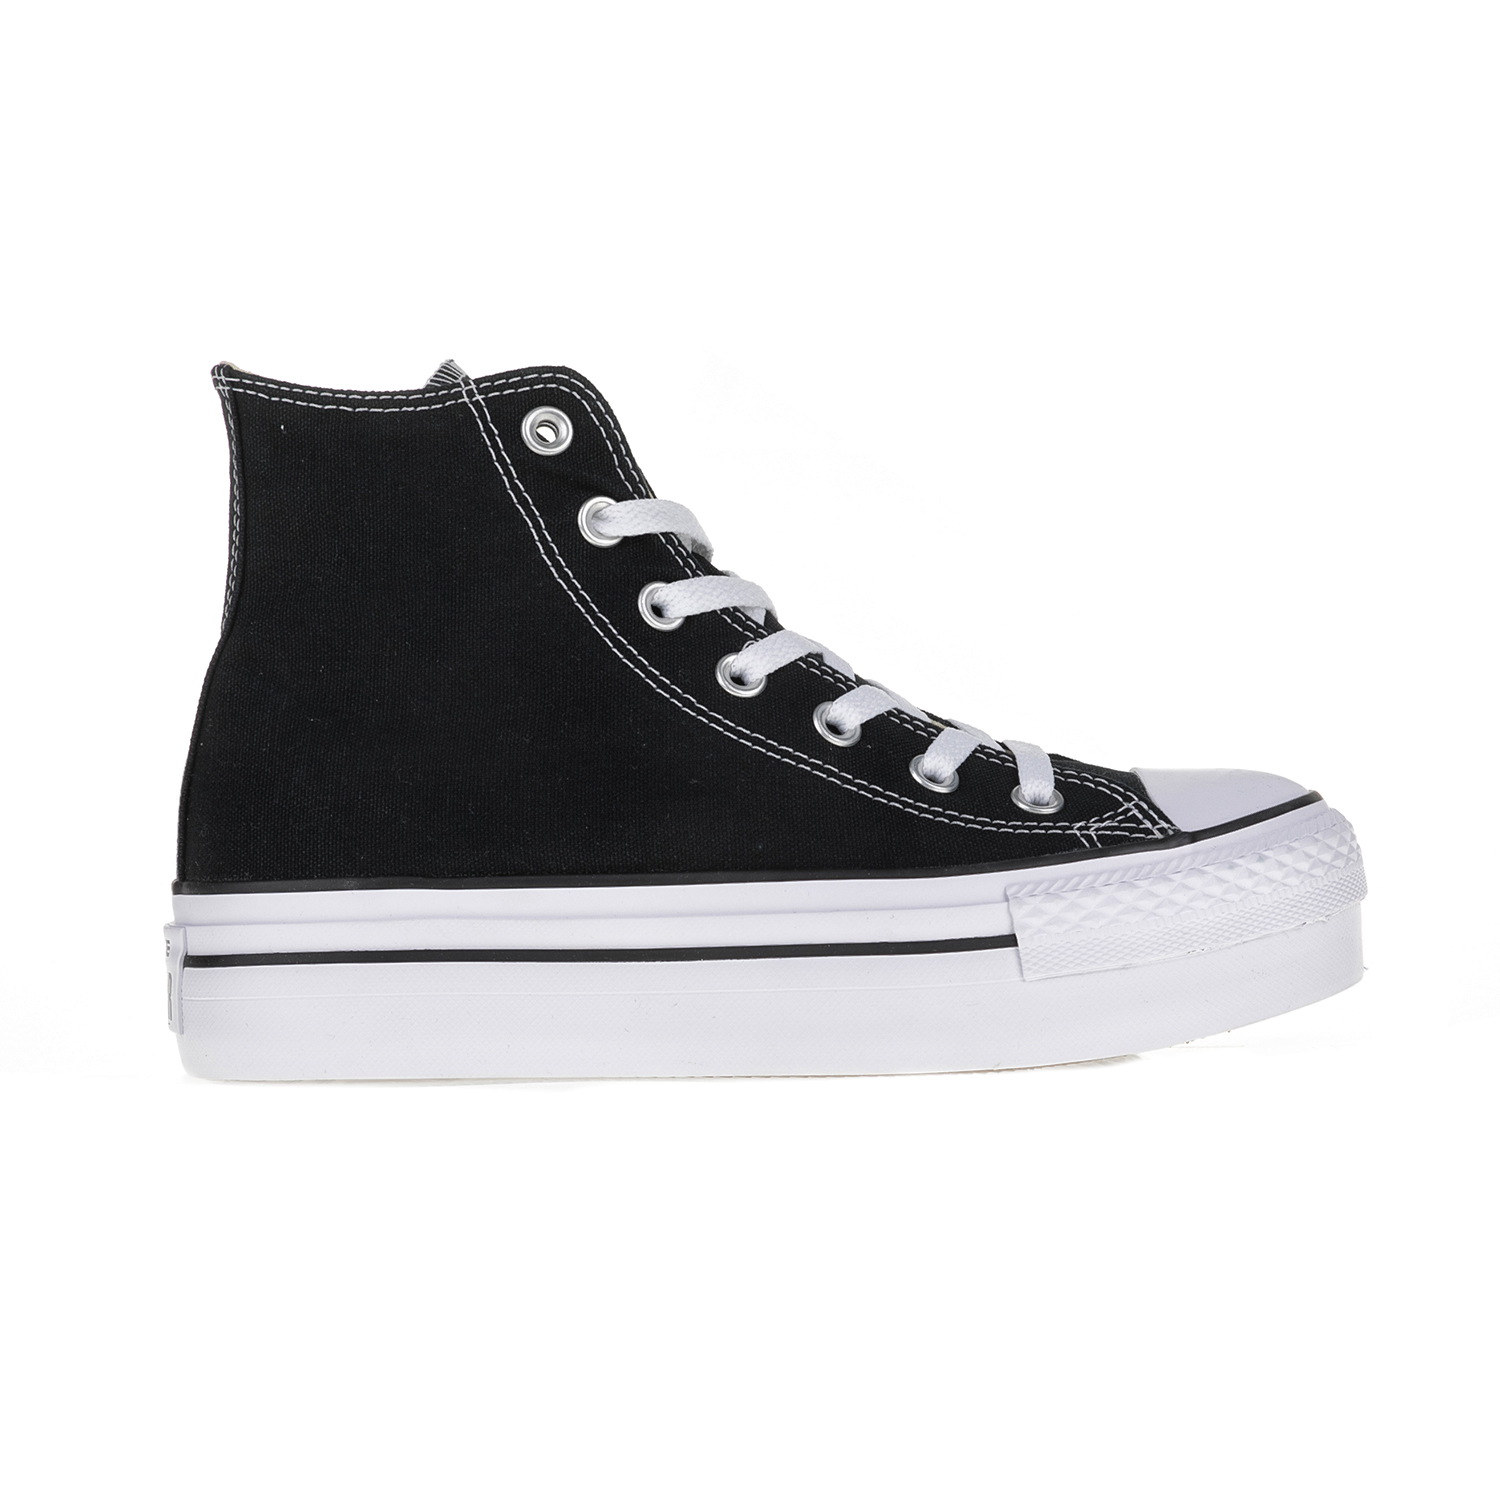 CONVERSE – Γυναικεία παπούτσια με δίπατη σόλα Chuck Taylor All Star Hi μαύρα